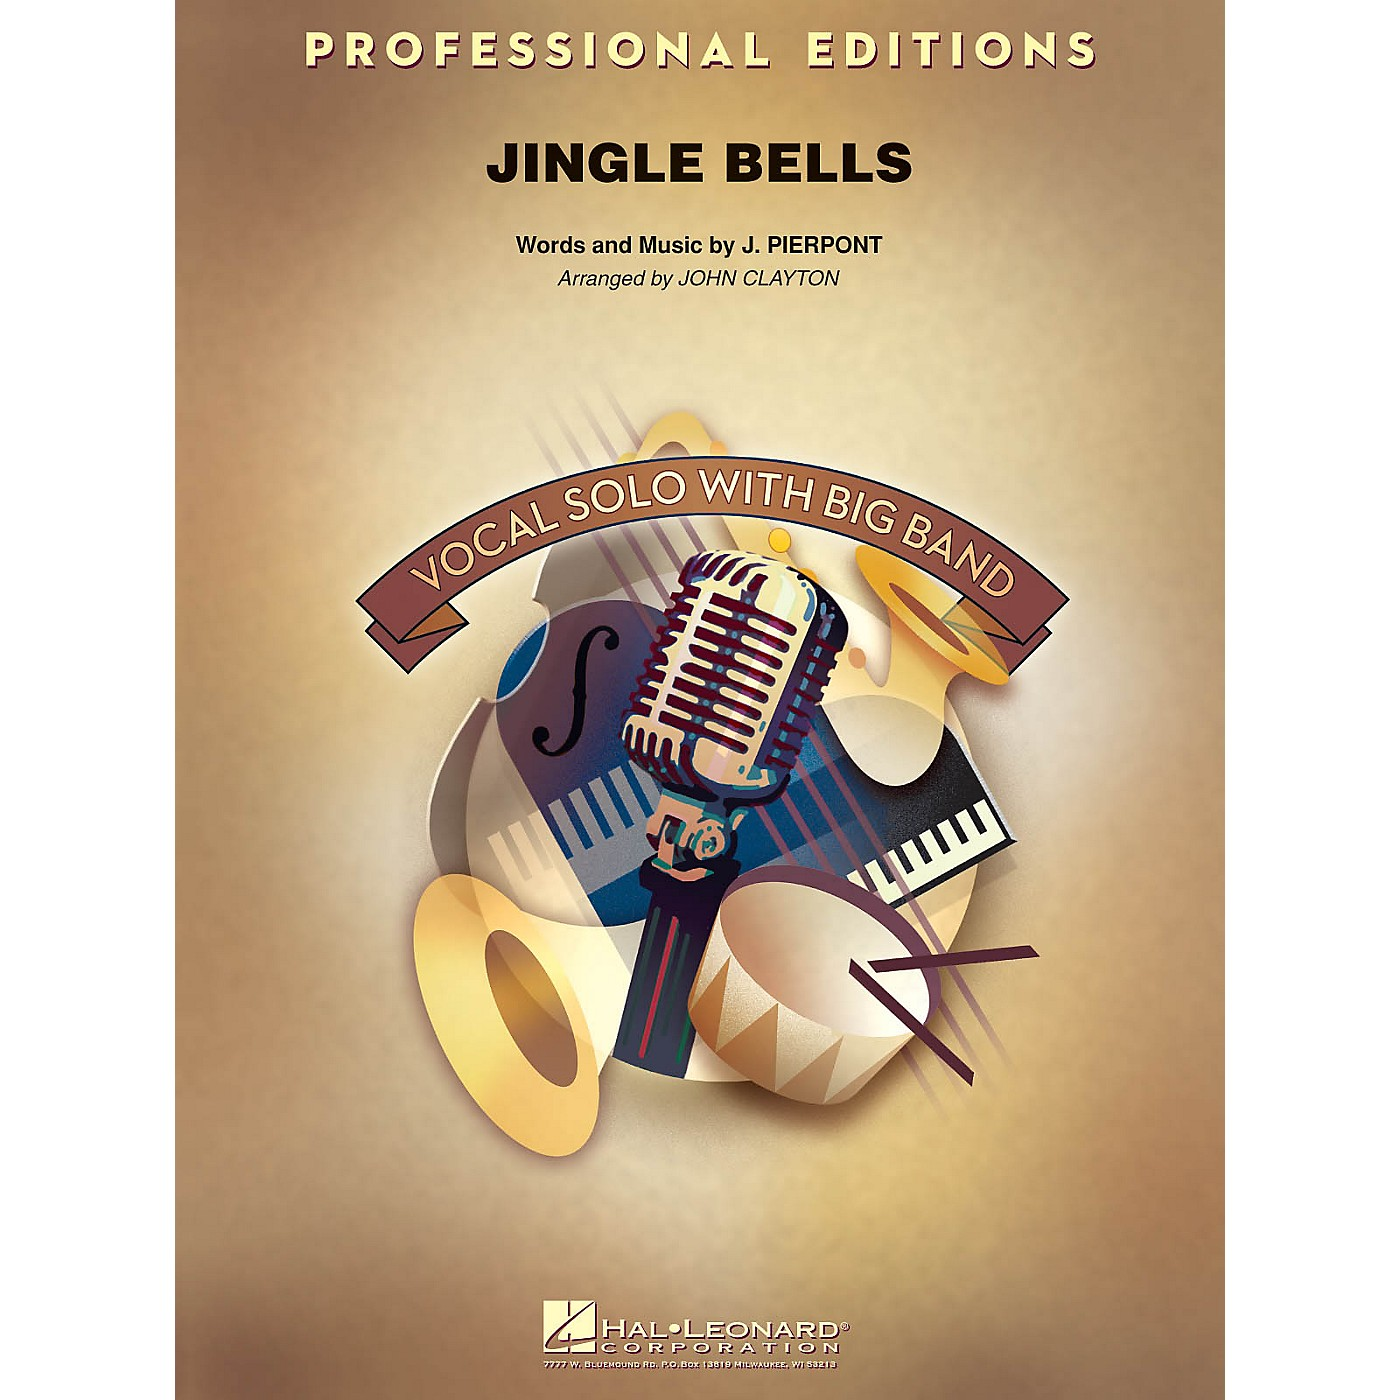 Hal Leonard Jingle Bells (Key: Bb, B, C) Jazz Band Level 5 Arranged by John Clayton thumbnail